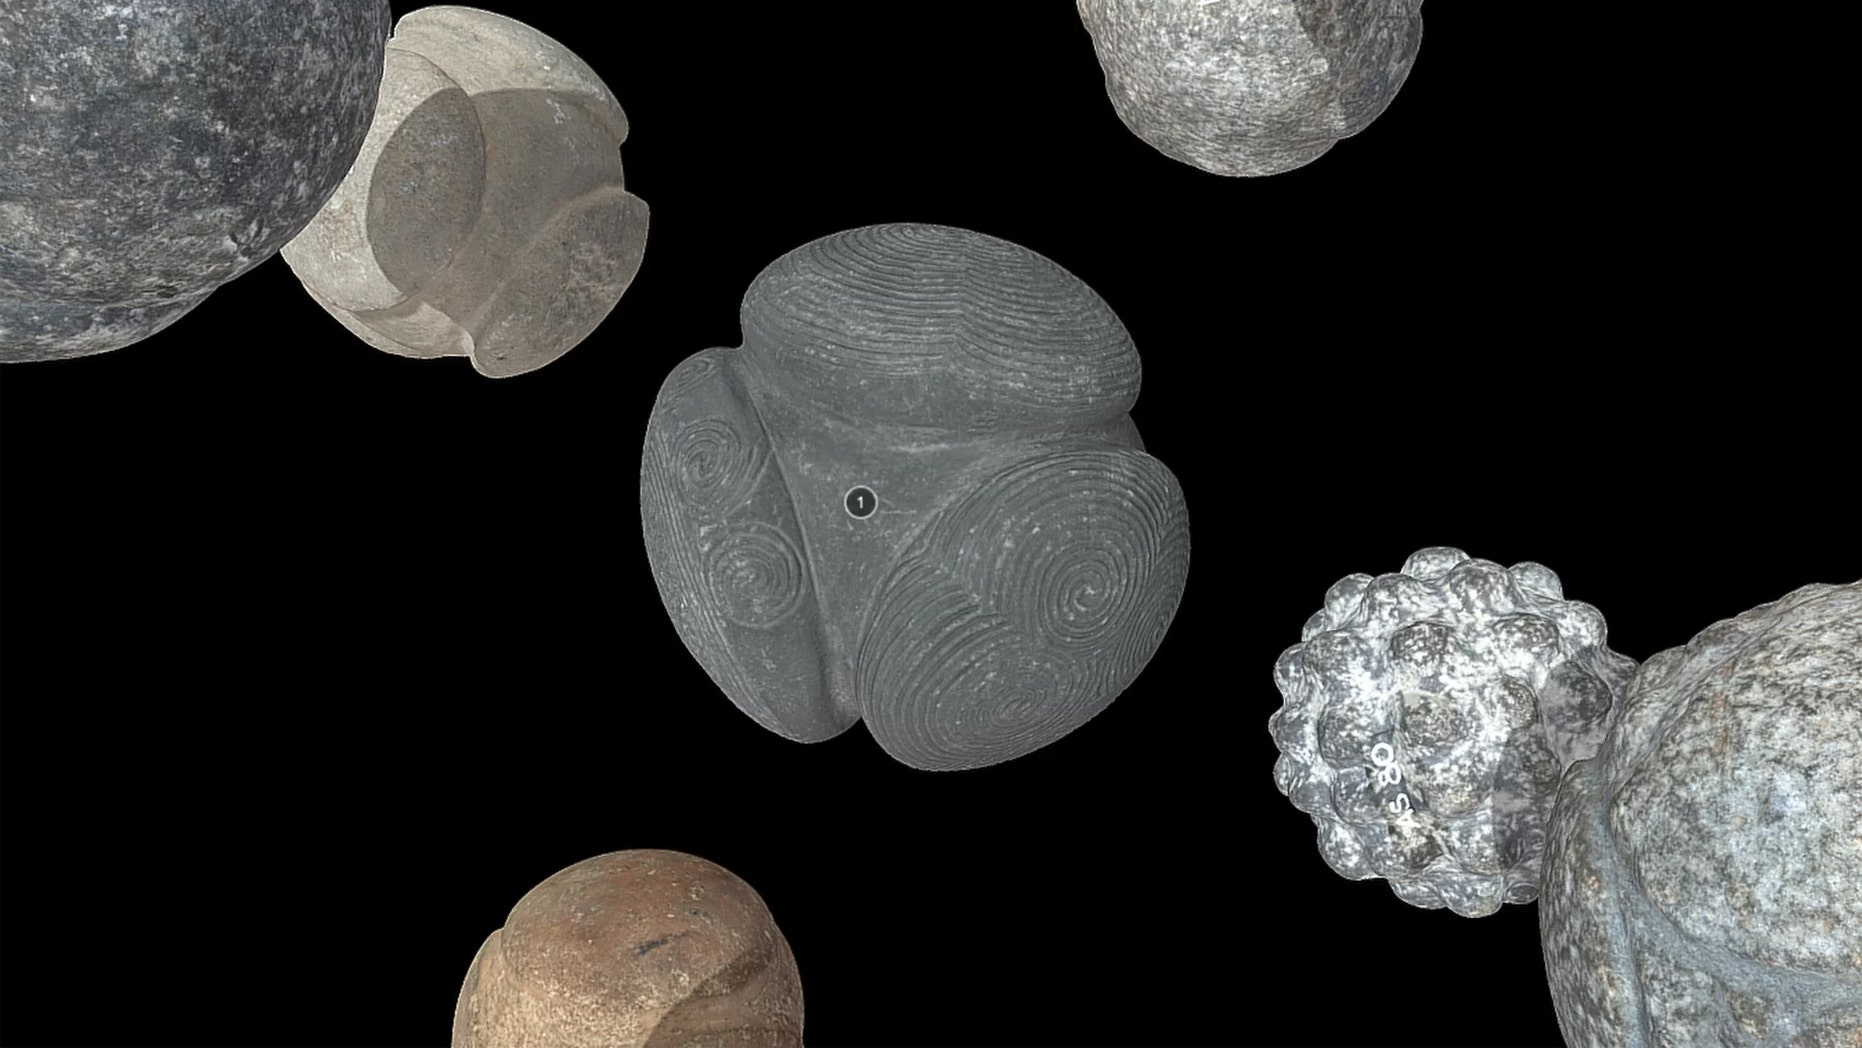 The 3D models of the carved balls of stone, including the spiral-carved Towie ball (center), are now posted online. Credit: National Museums Scotland